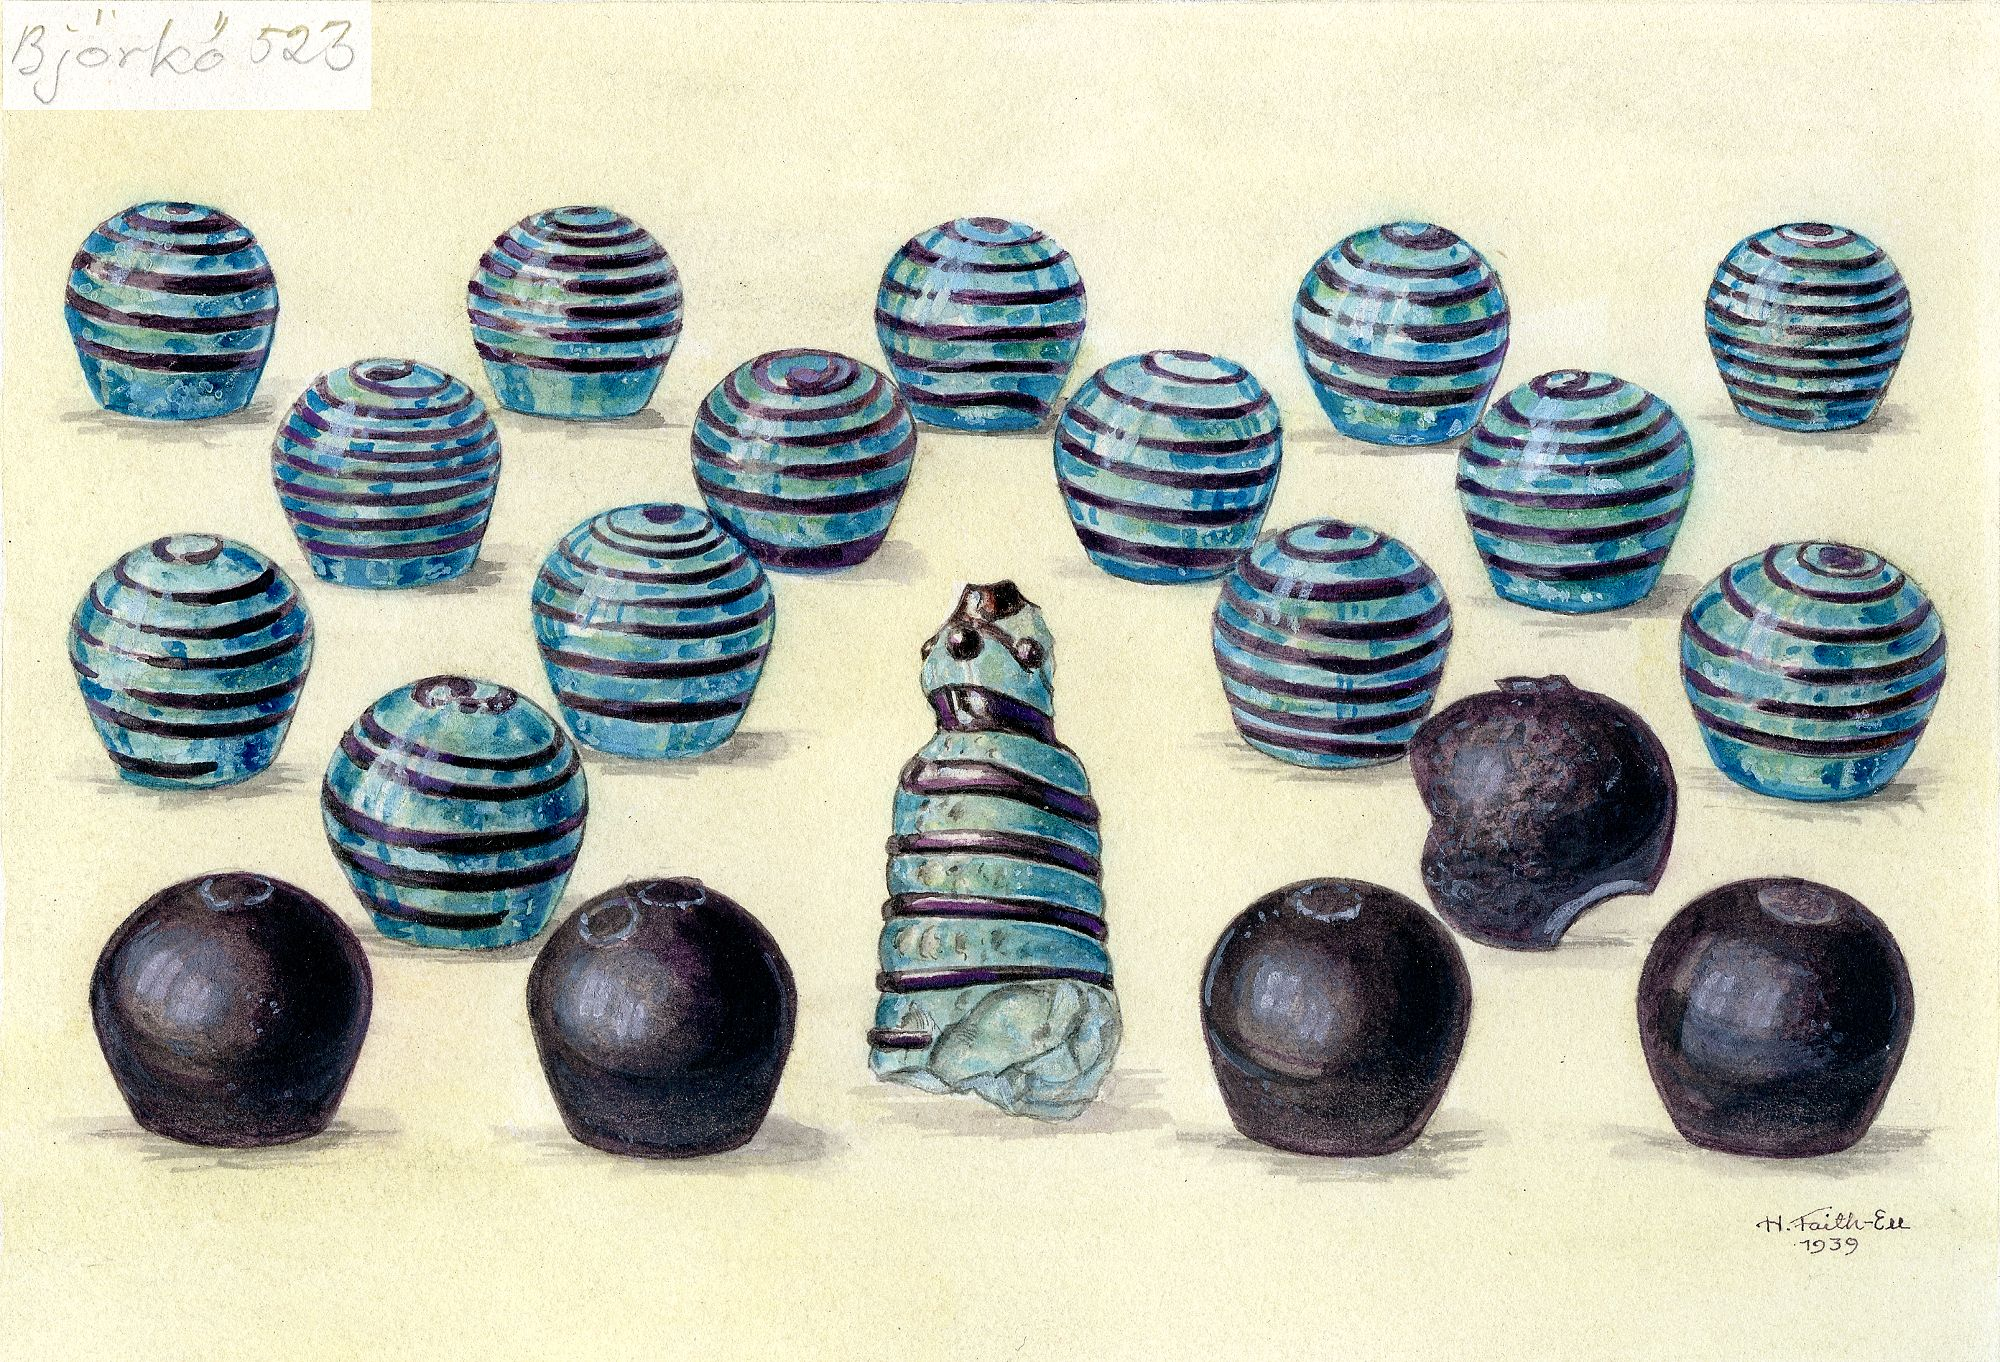 A Drawing made in 1939, of the glass Hnefatafl pieces found in Björkö, Norr om Borg, Grav, Kammargrav, Sweden (Bj 523). The pieces and the drawing are kept in the Historiska Museum, 106813, in Stockholm, Sweden.